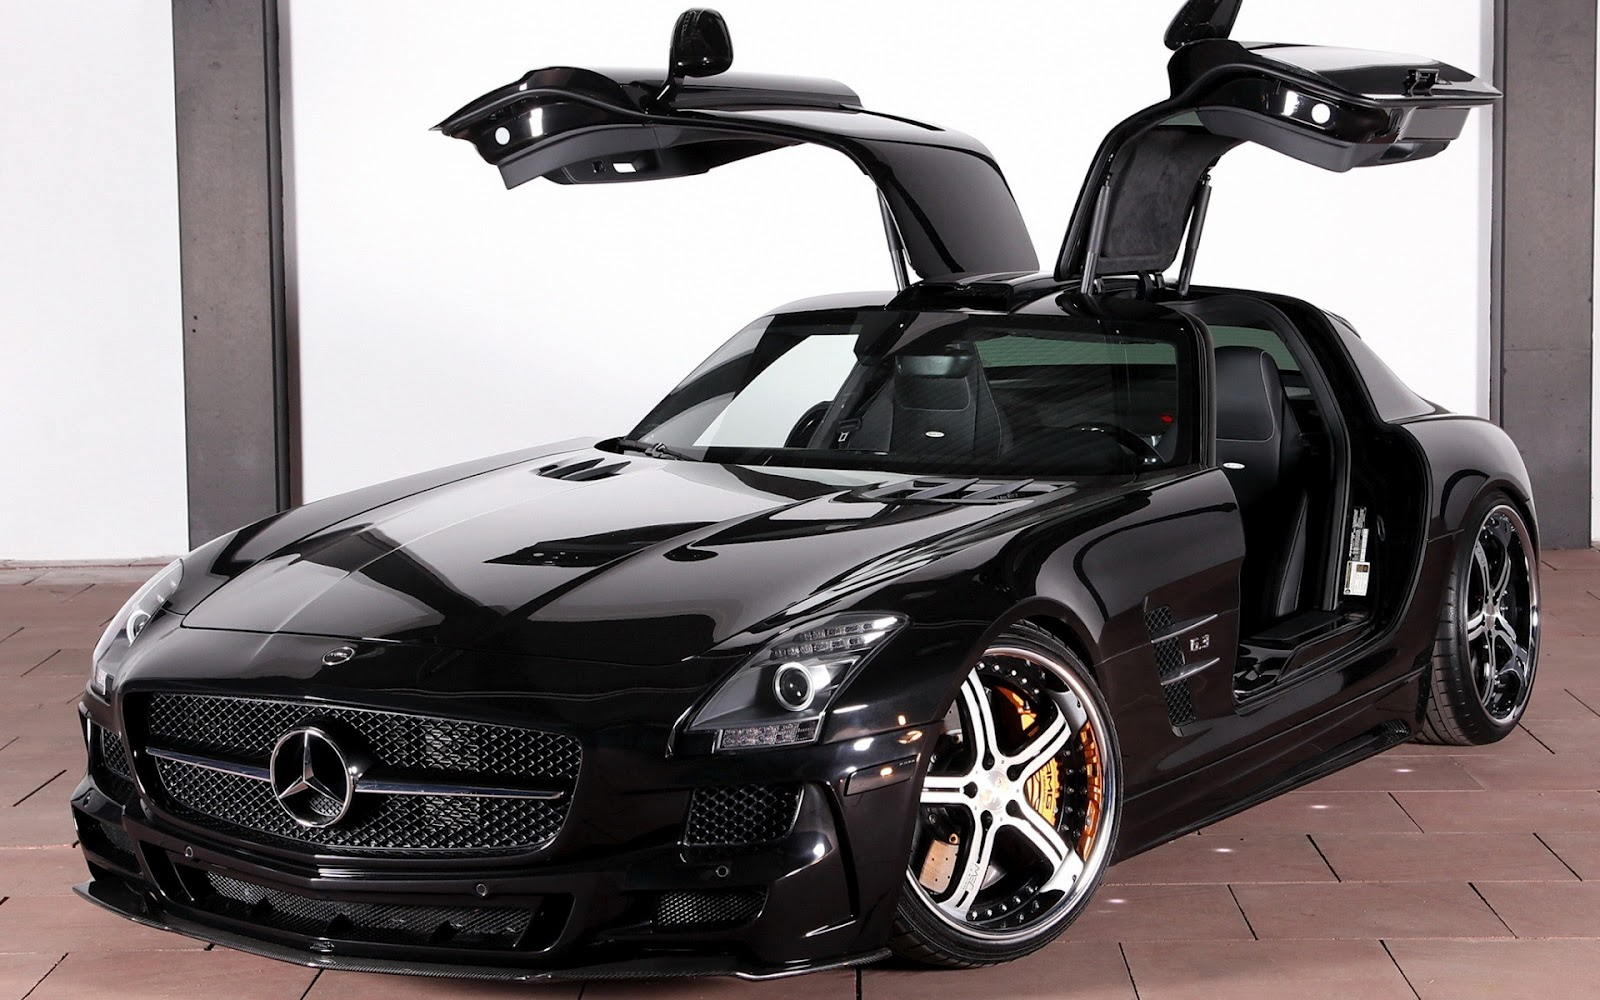 Showcasing car pictures and videos of the super cool mercedes sls 6.3